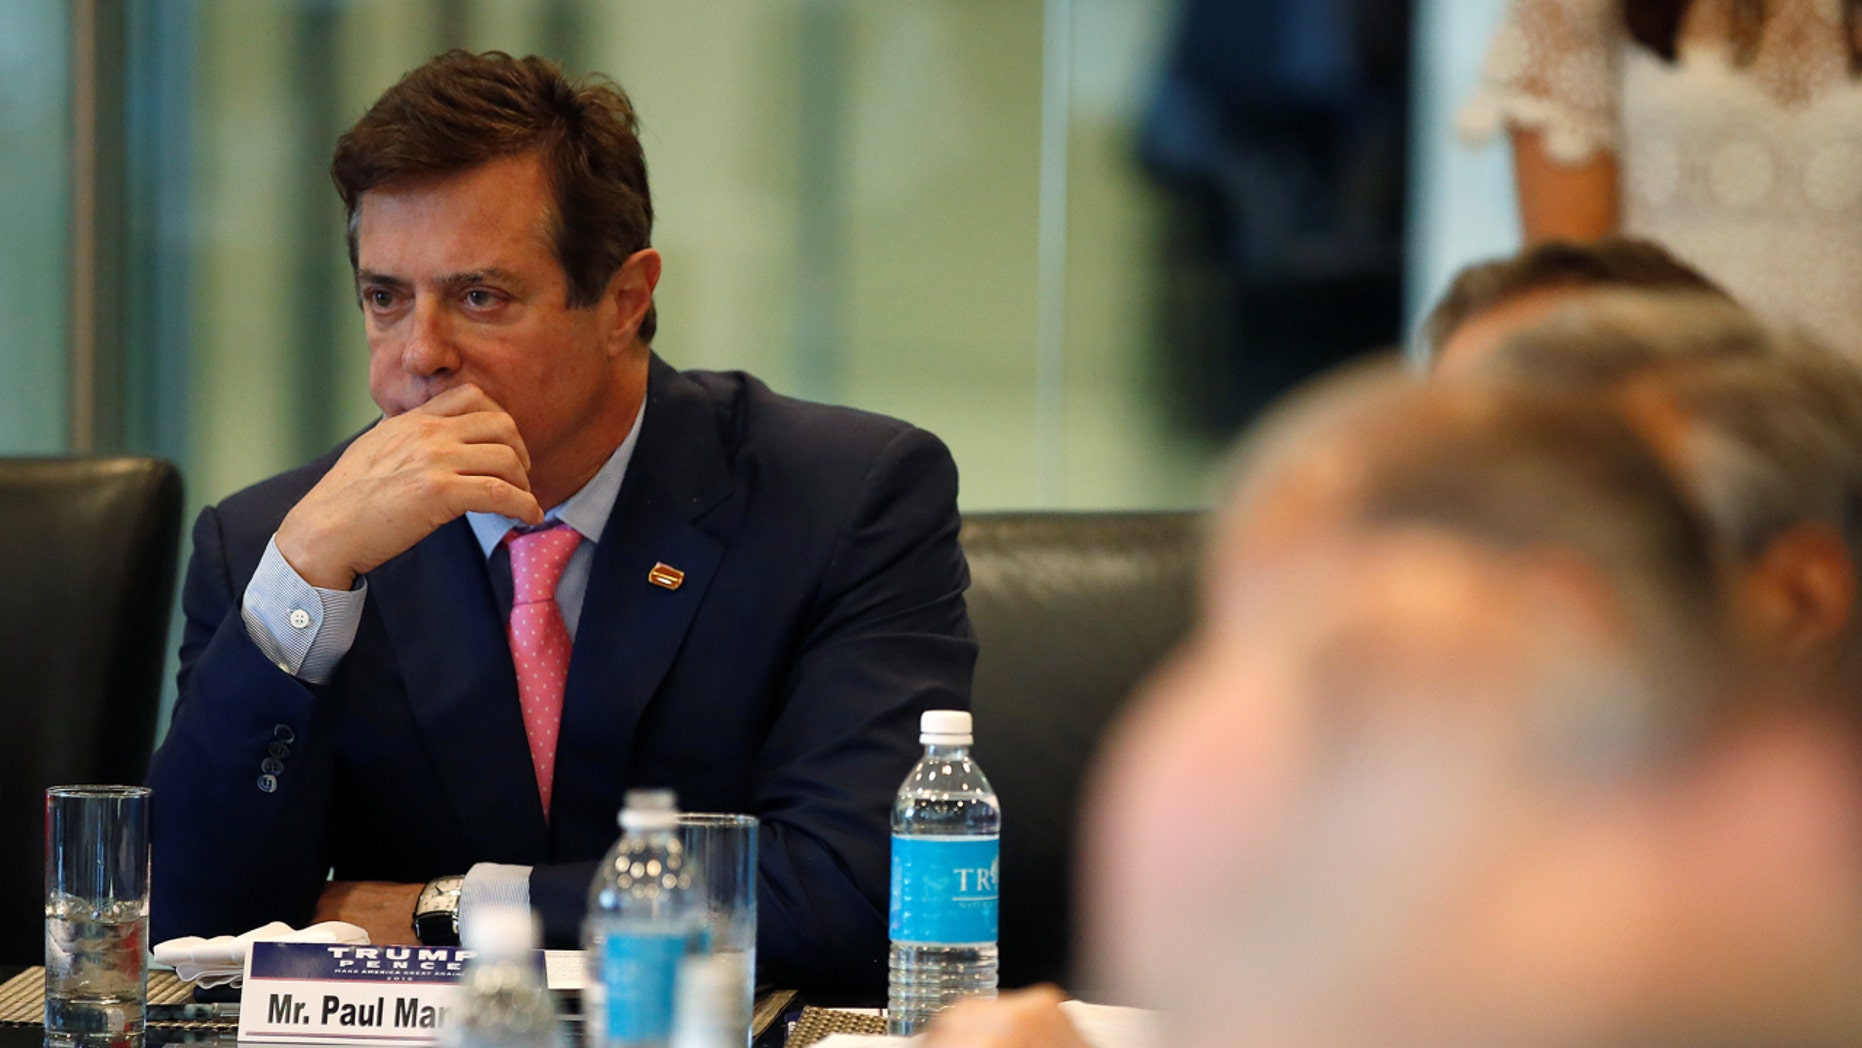 Paul Manafort of Republican presidential nominee Donald Trump's staff listens during a round table discussion on security at Trump Tower in the Manhattan borough of New York, U.S., August 17, 2016. REUTERS/Carlo Allegri - RTX2LL4K